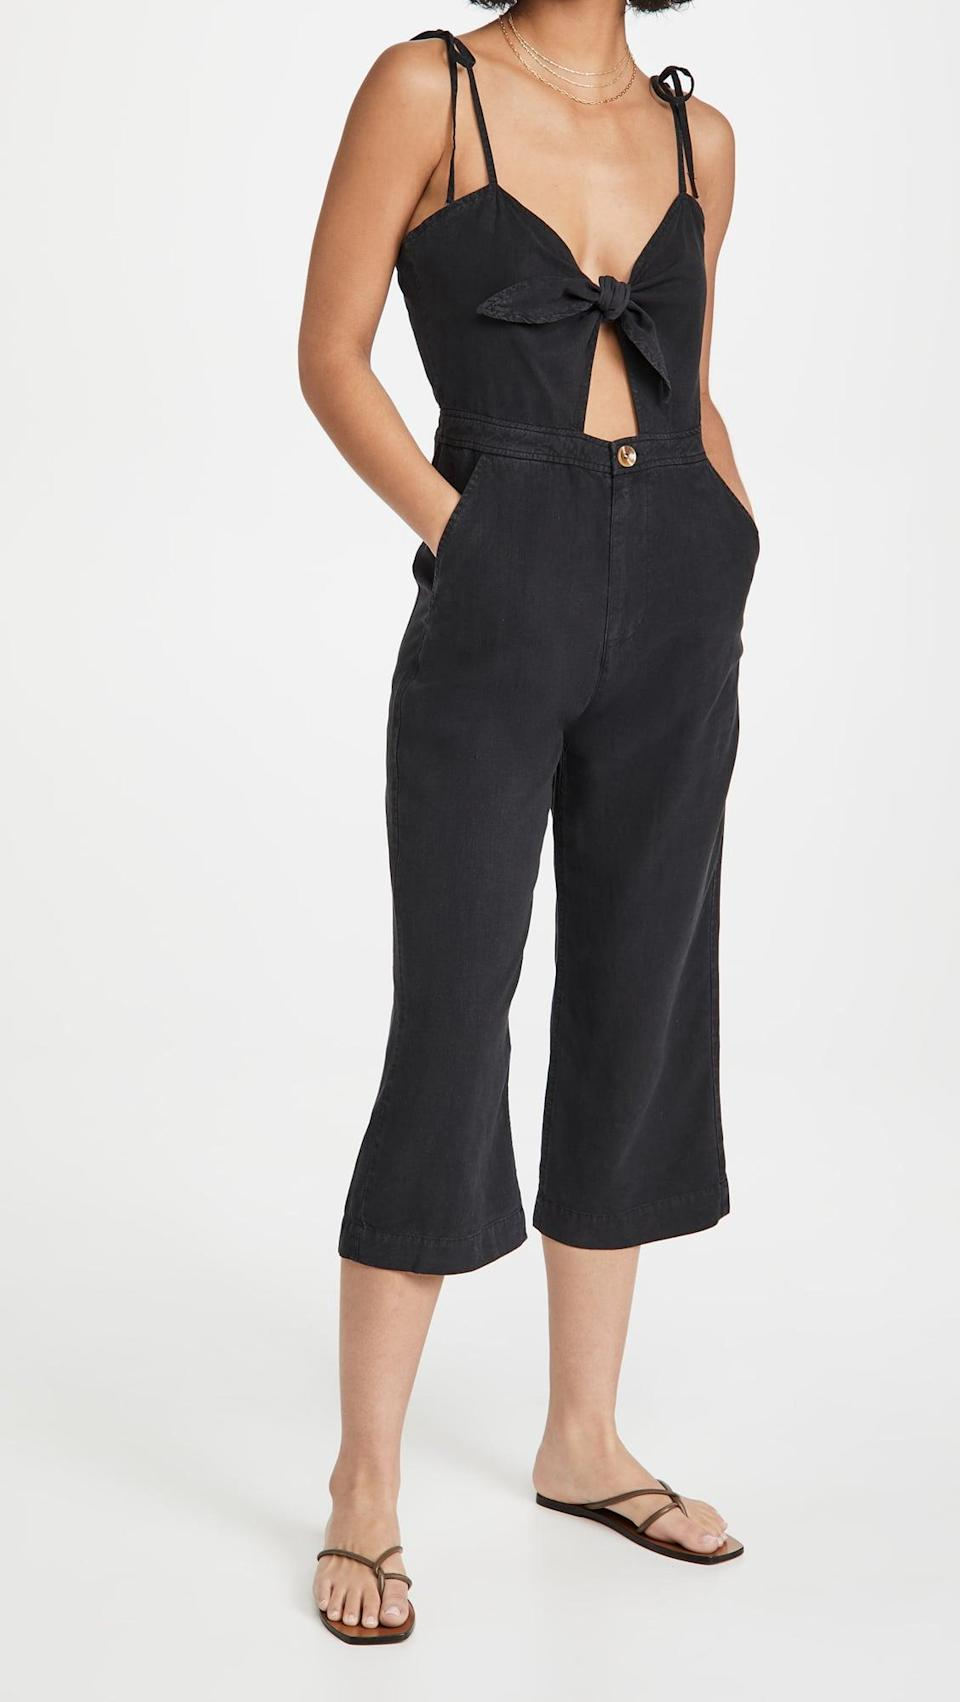 <p>We love the <span>DL1961 Hepburn High Rise Wide Leg Jumpsuit</span> ($239). The tie-top and cutout feel sexy, but the pant bottoms give it a cool and casual feel. </p>